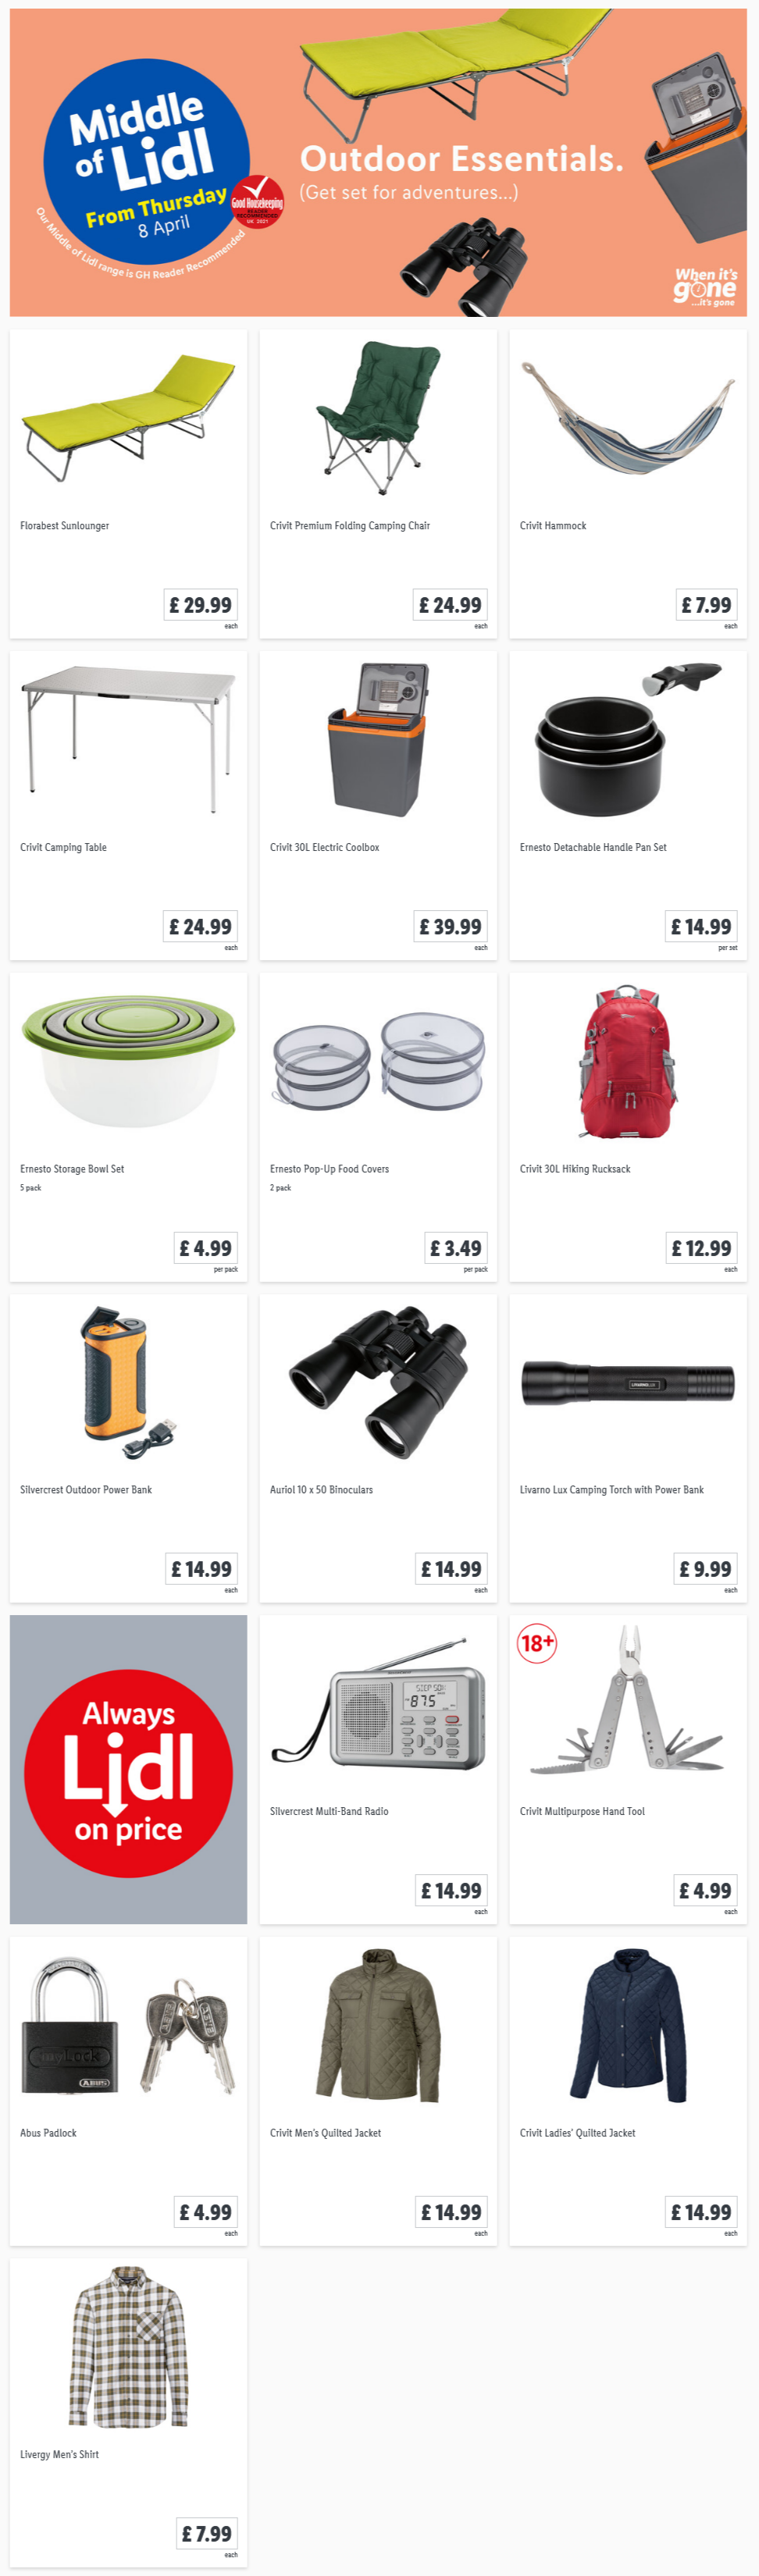 LIDL Offers this Thursday From 8th April 2021 LIDL Outdoor Essentials